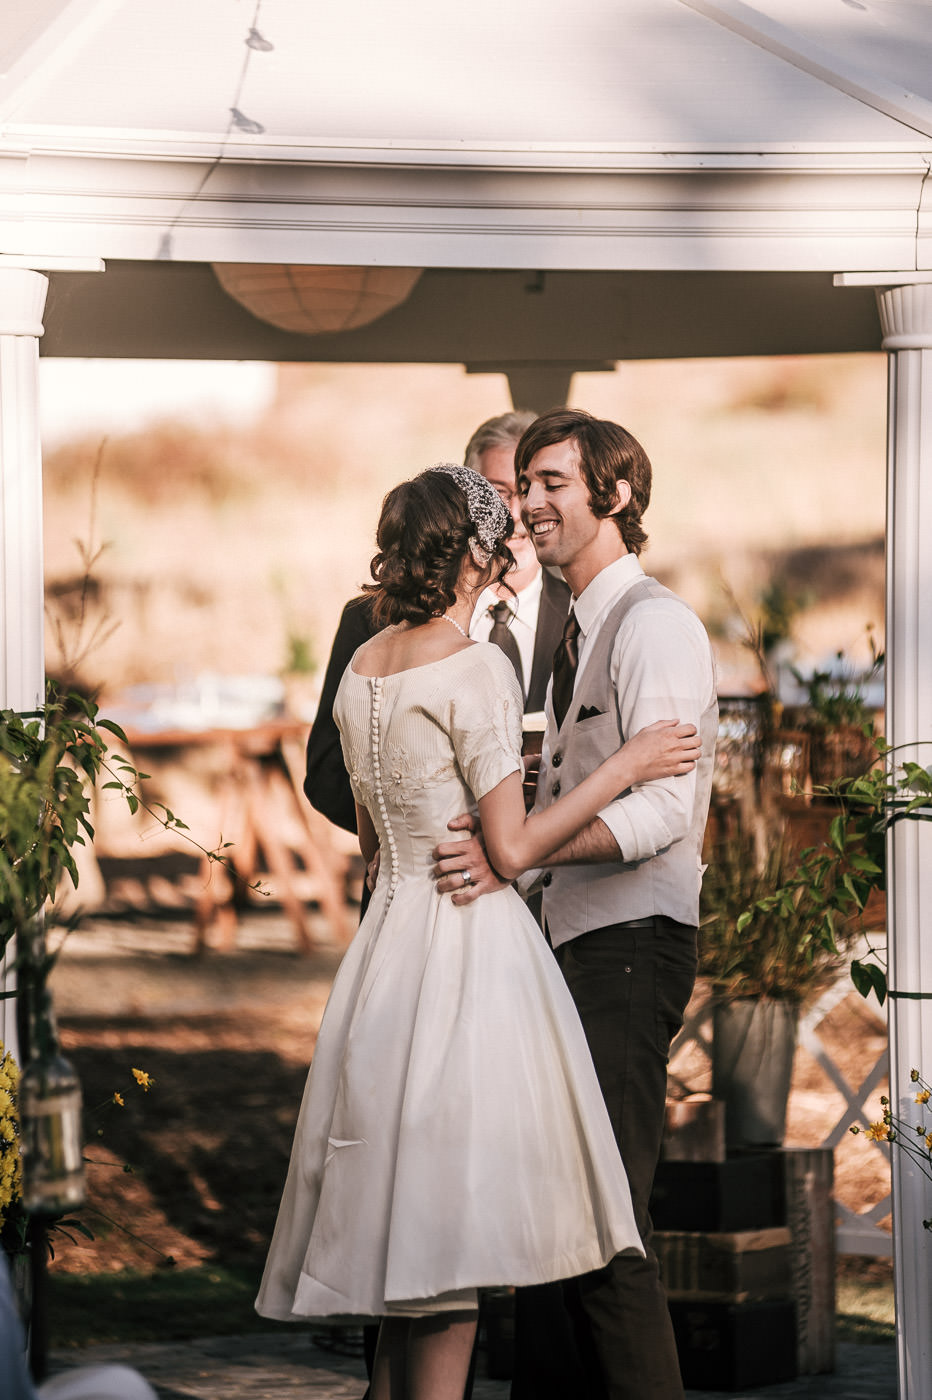 Newly married couple smiles and prepares to have their first kiss at Temecula wine country wedding